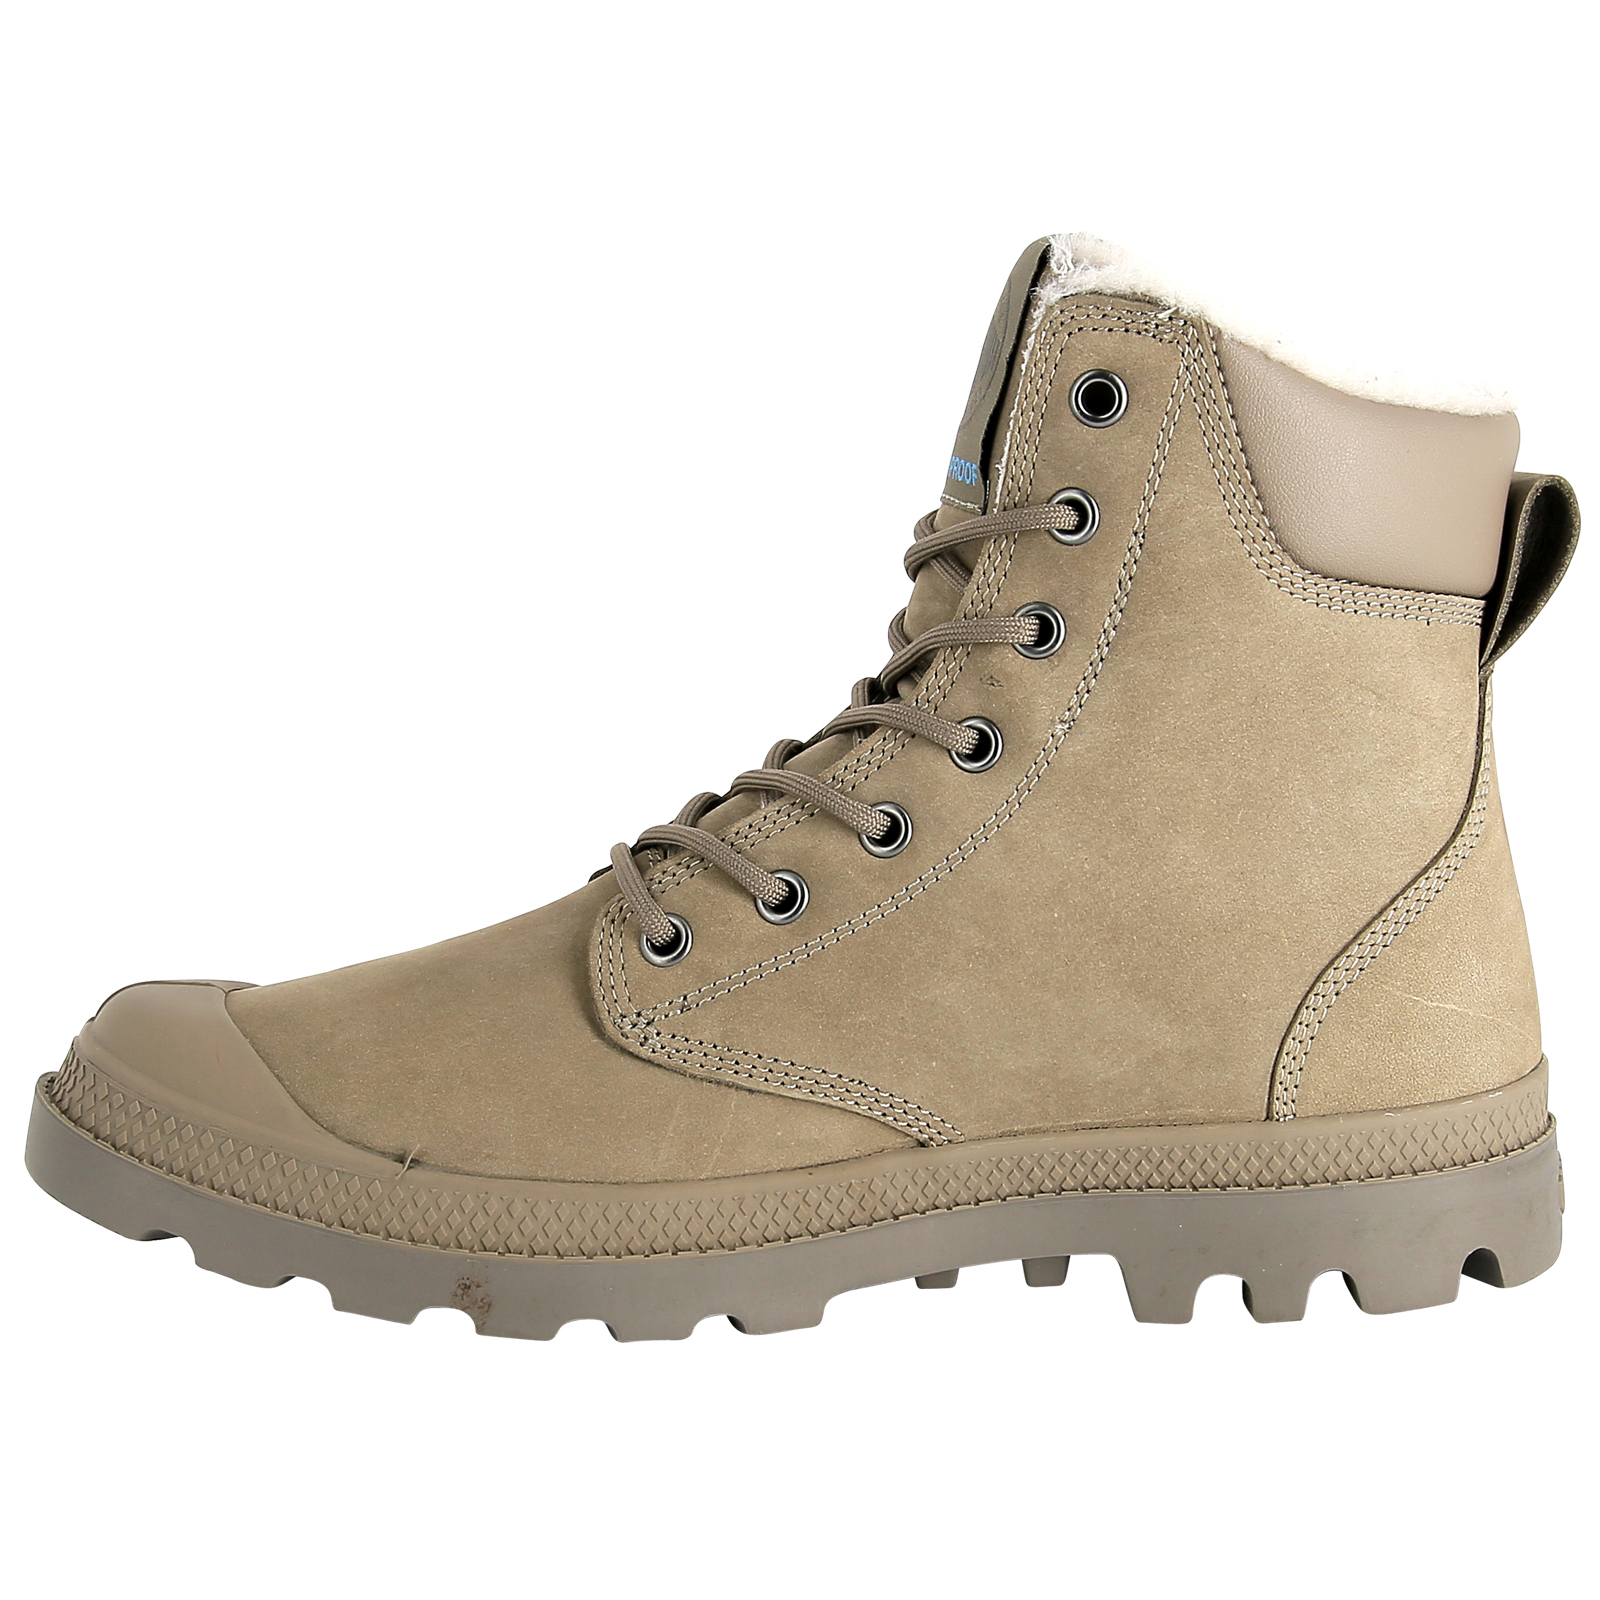 Palladium-Mens-Pampa-Sport-Cuff-Waterproof-Suede-Leather-Shoe-Wool-Lined-Boots thumbnail 29